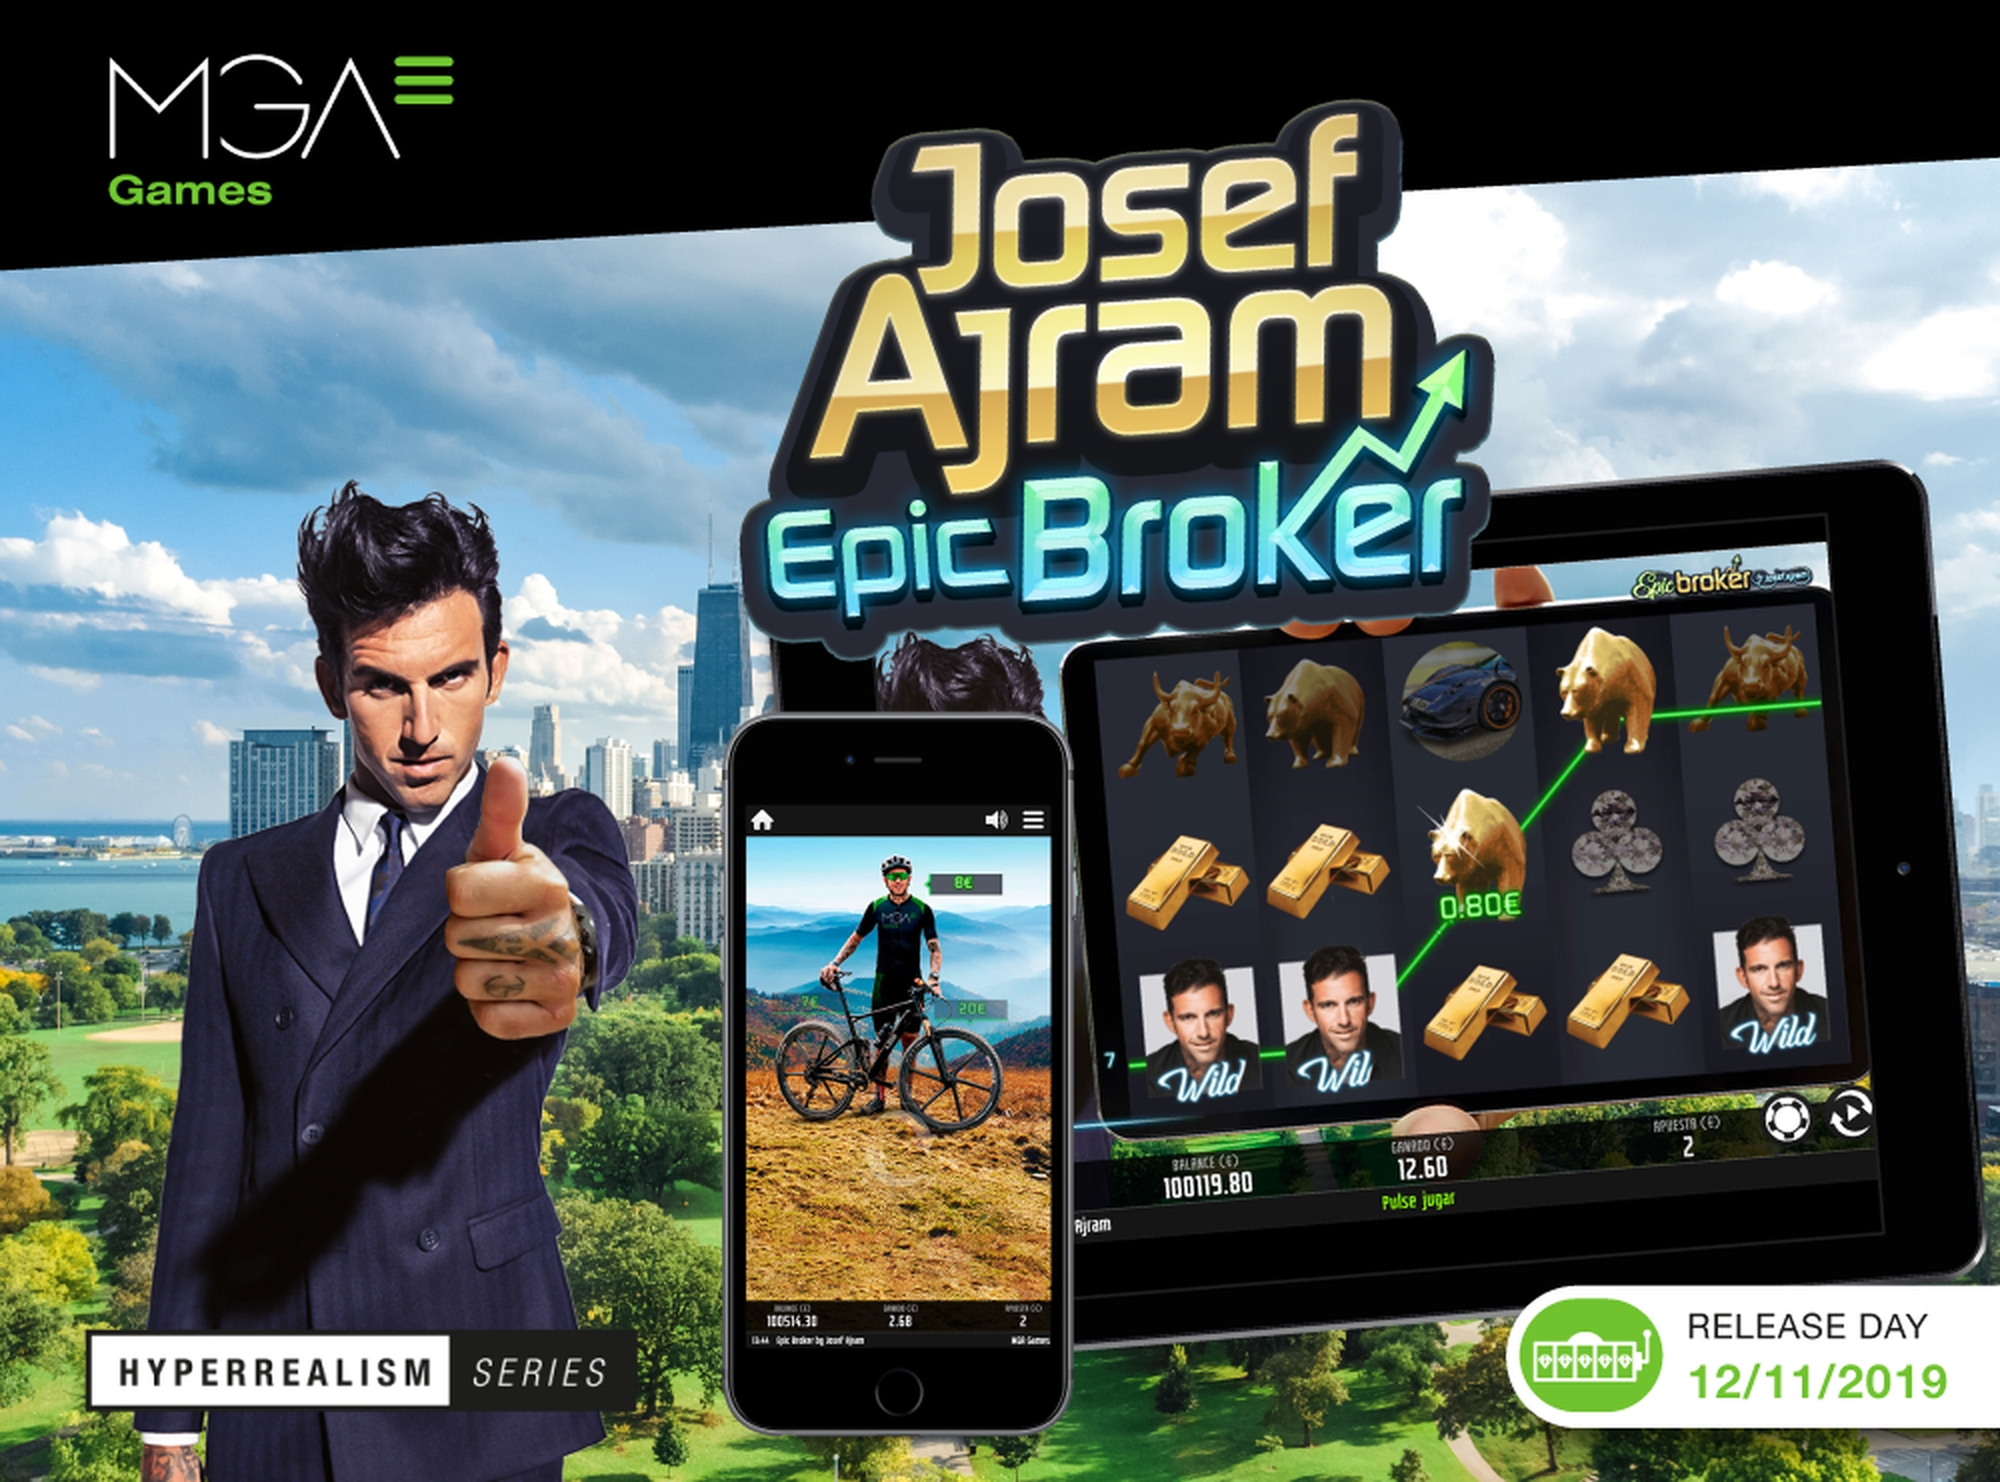 The Josef Ajram Epic Broker Online Slot Demo Game by MGA